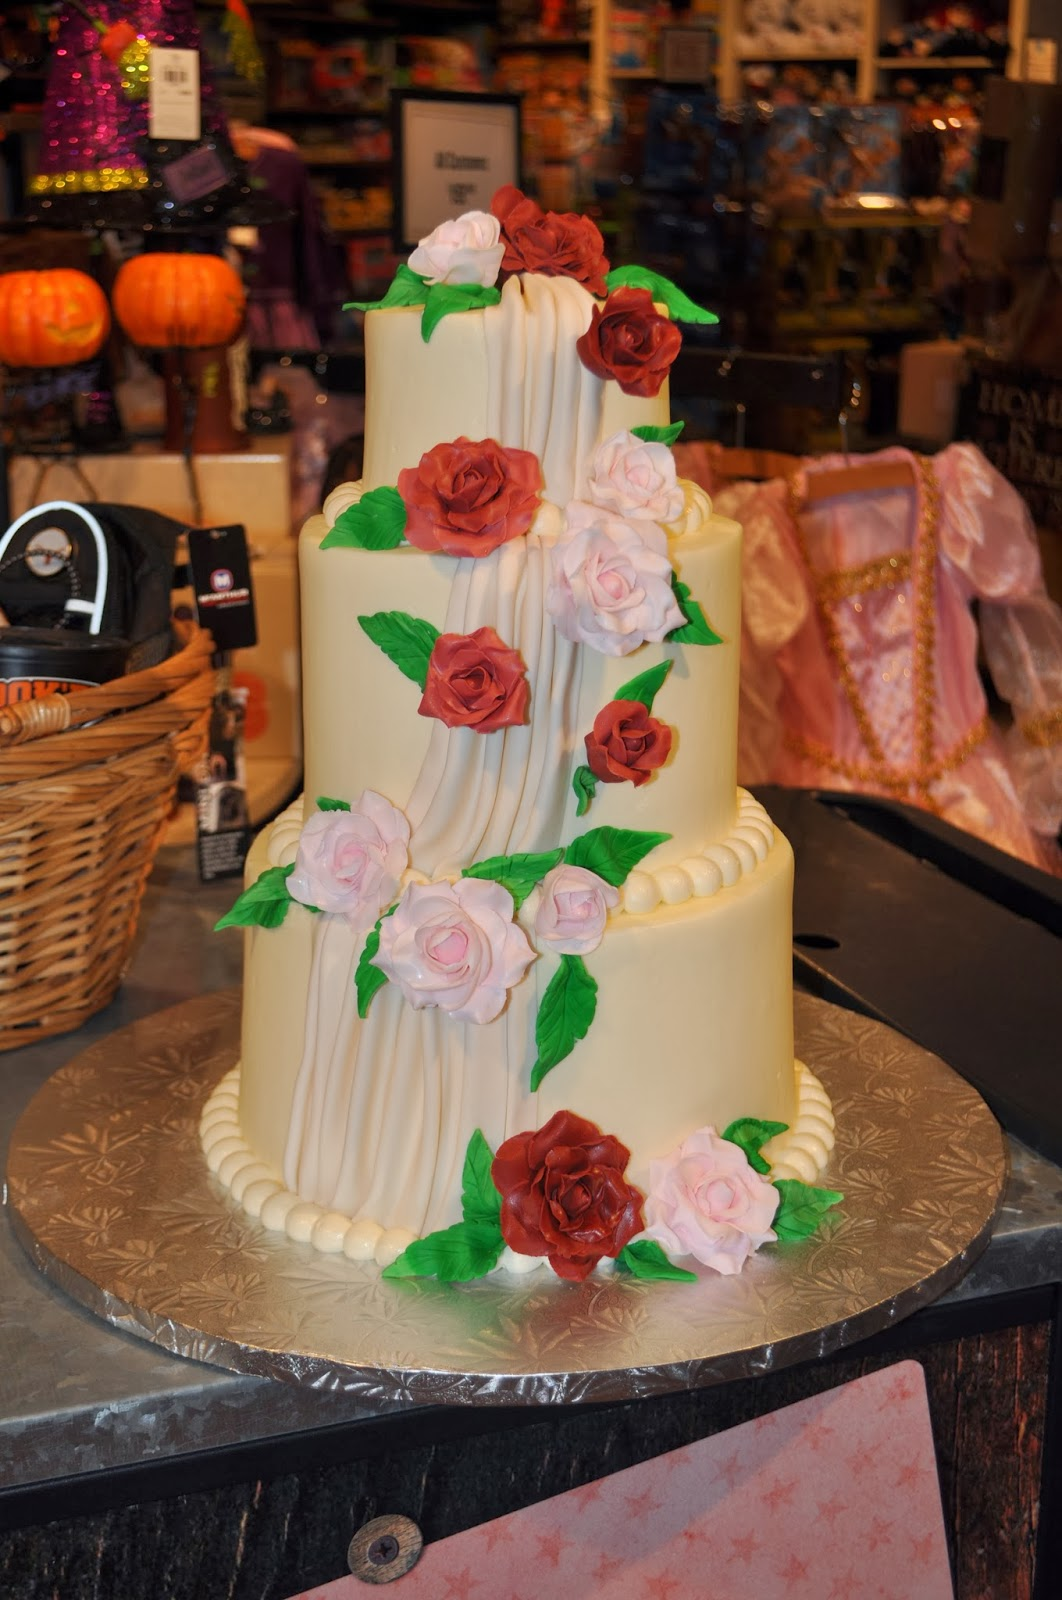 Owner And Cake Artist : Leah s Sweet Treats: Custom Cakes Wedding Cakes Sprinkle ...